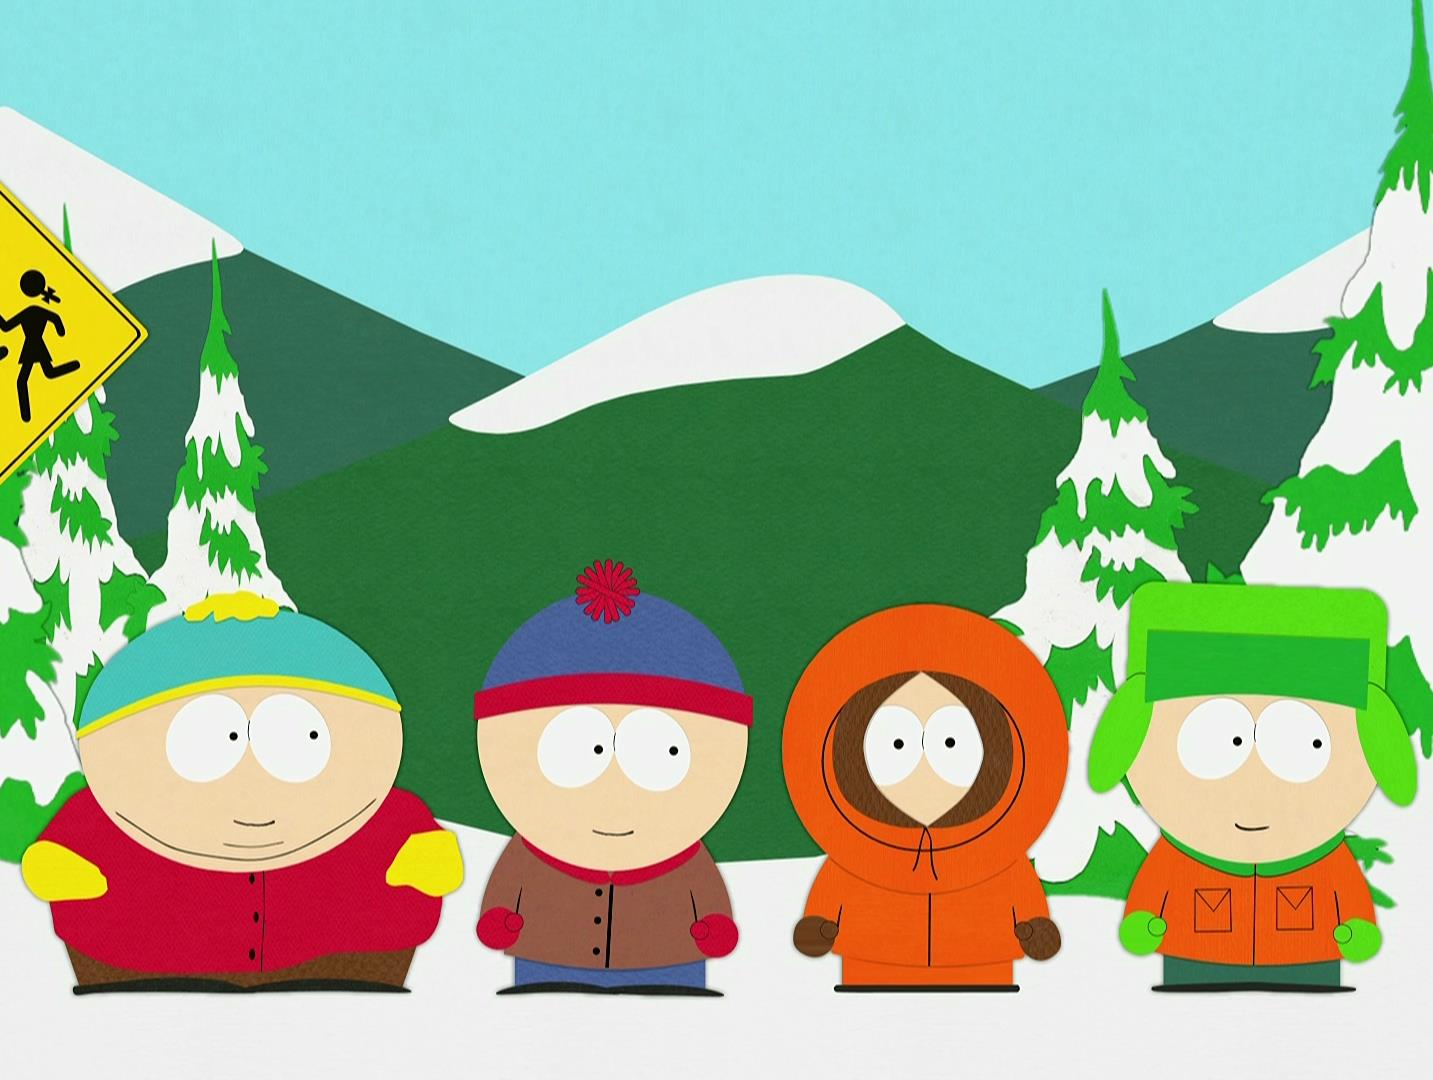 SOUTH PARK From 28 September Comedy Central will air the 18th season of South Park.